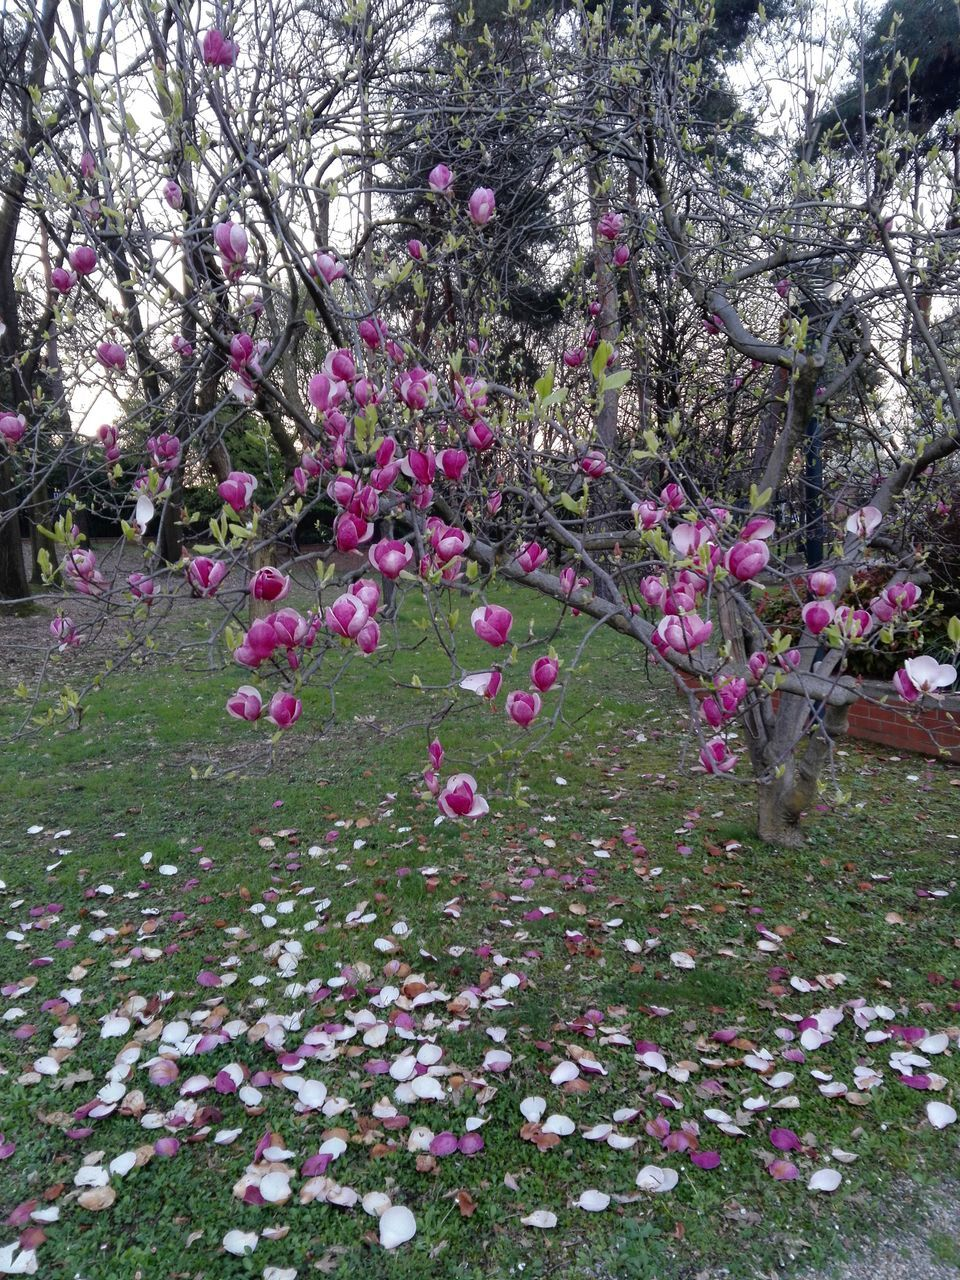 flower, growth, pink color, blossom, nature, tree, no people, purple, beauty in nature, plant, outdoors, pink, springtime, day, branch, freshness, fragility, grass, blooming